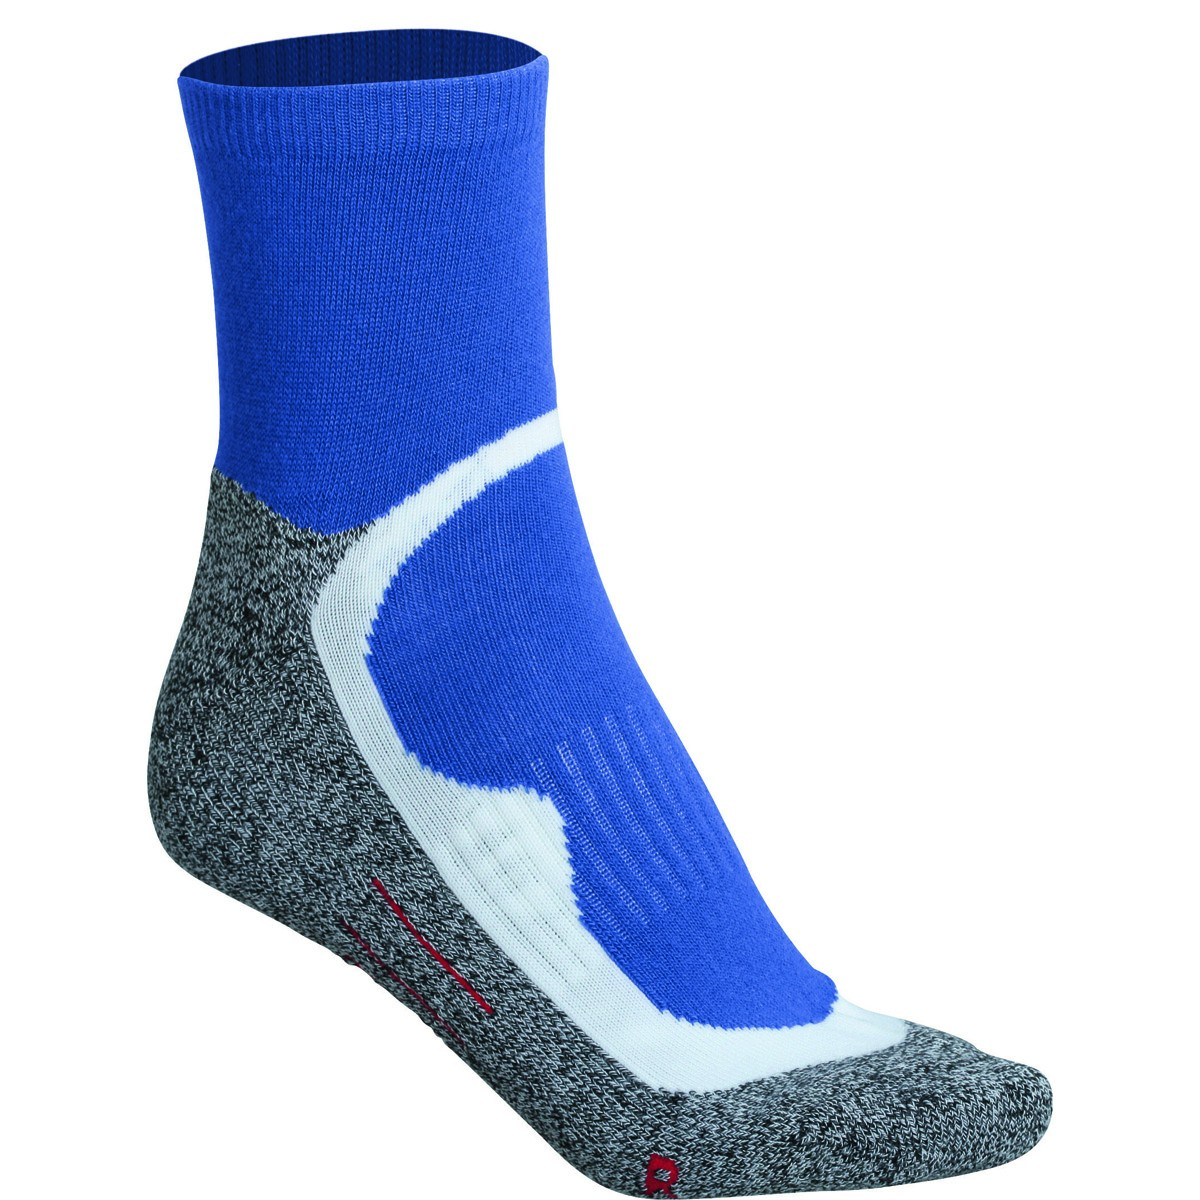 chaussettes courtes de sport homme femme jn210 bleu et gris. Black Bedroom Furniture Sets. Home Design Ideas